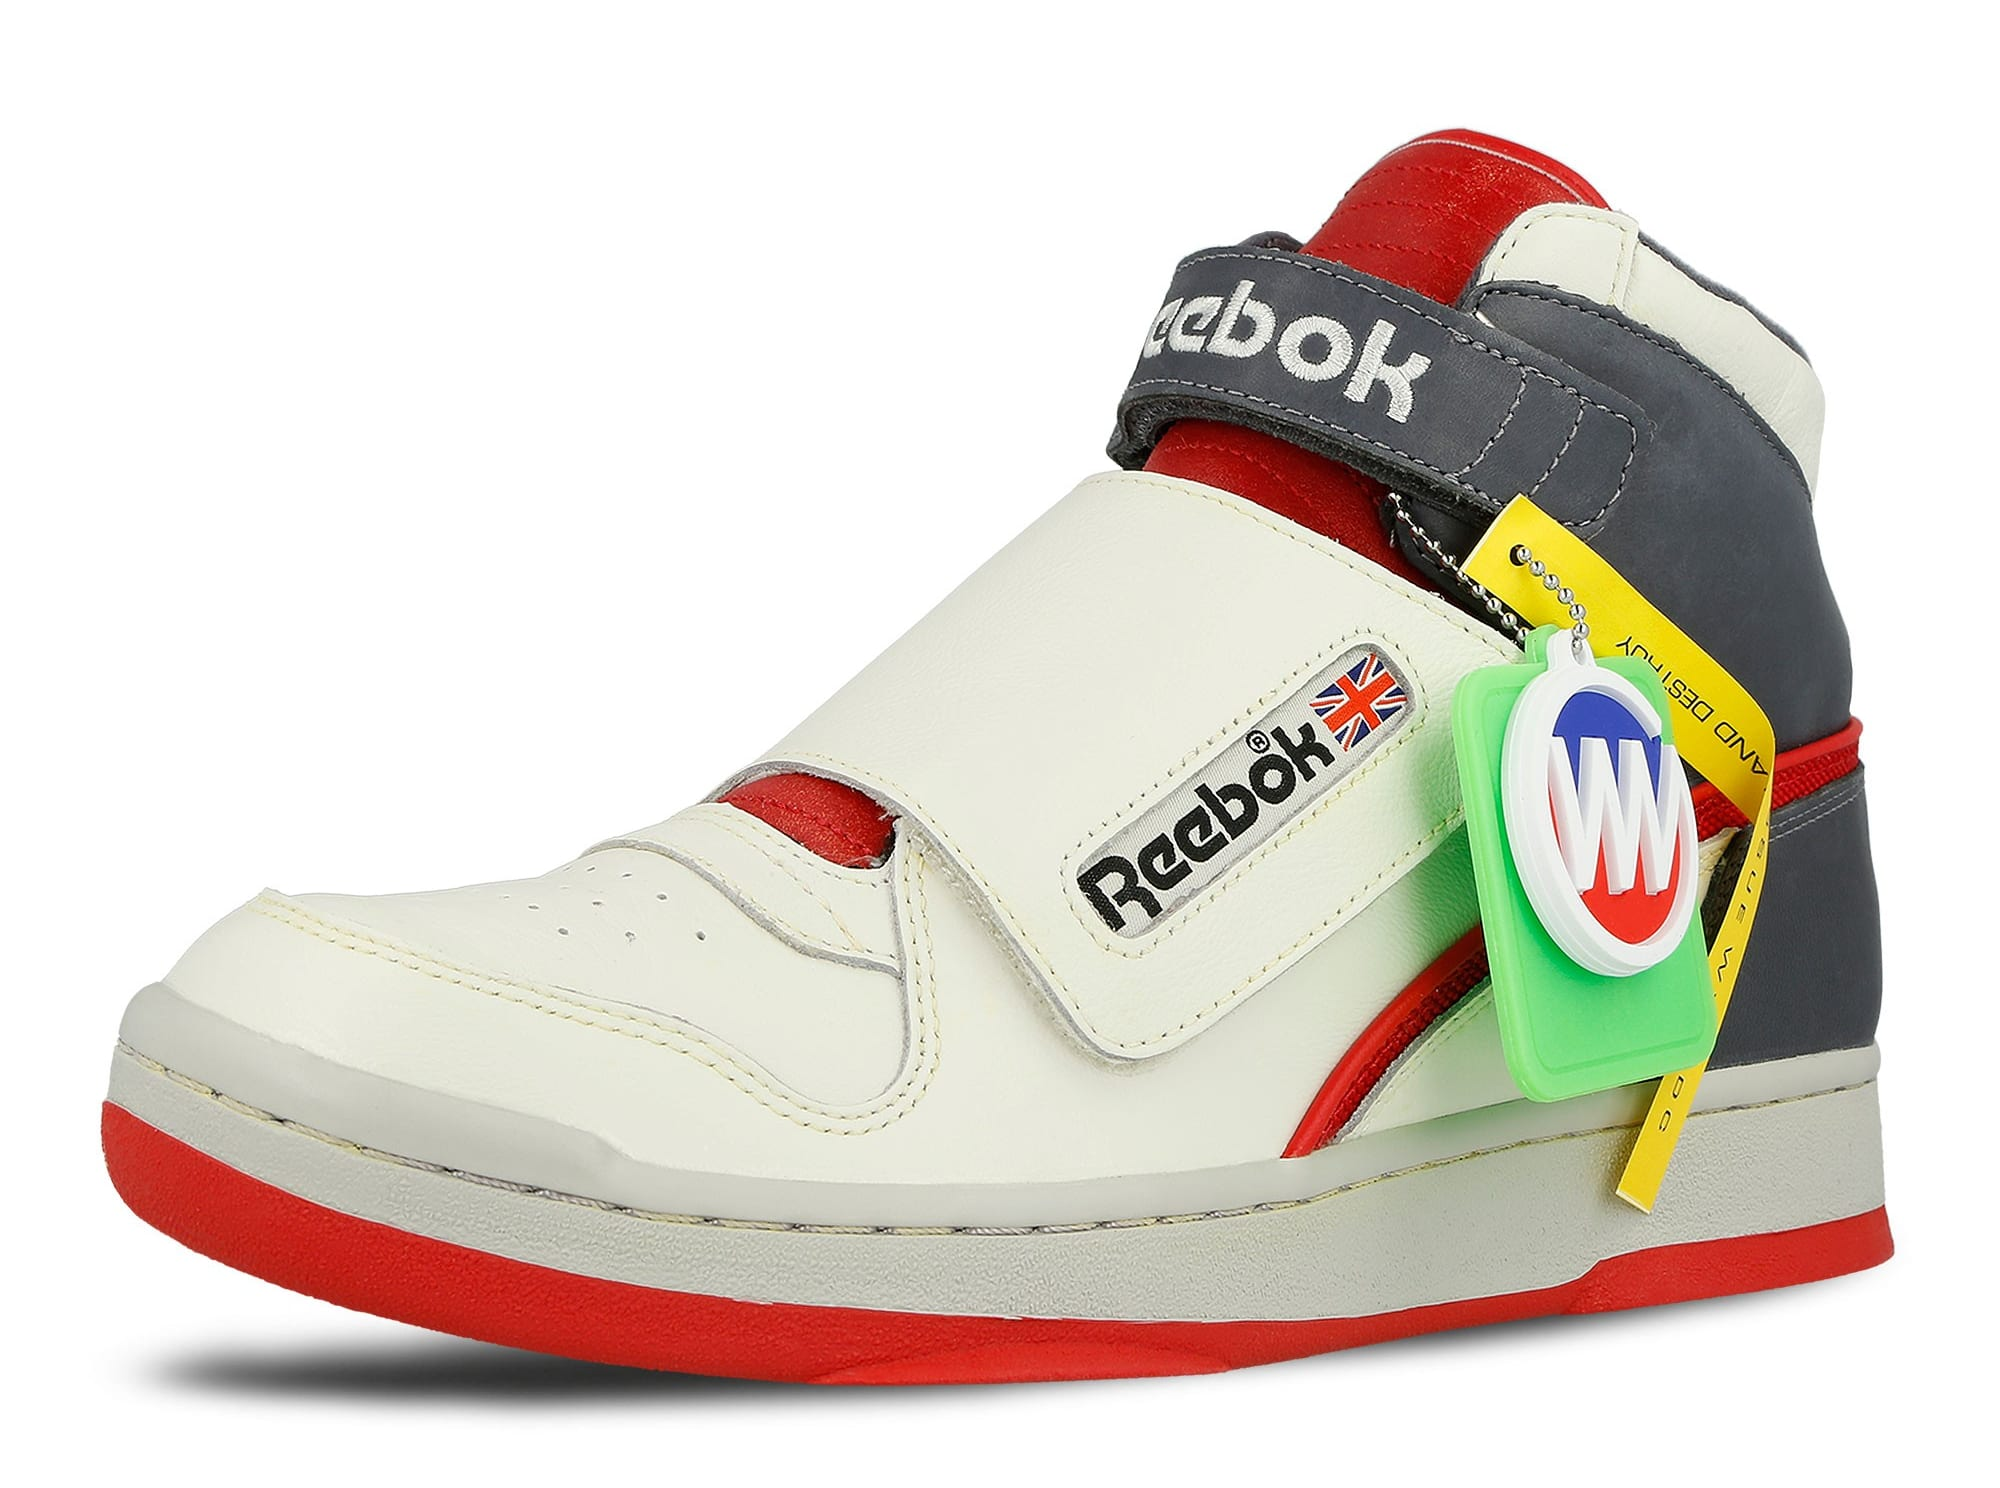 Reebok Alien Stomper 40th Anniversary Sneakers | The Coolector